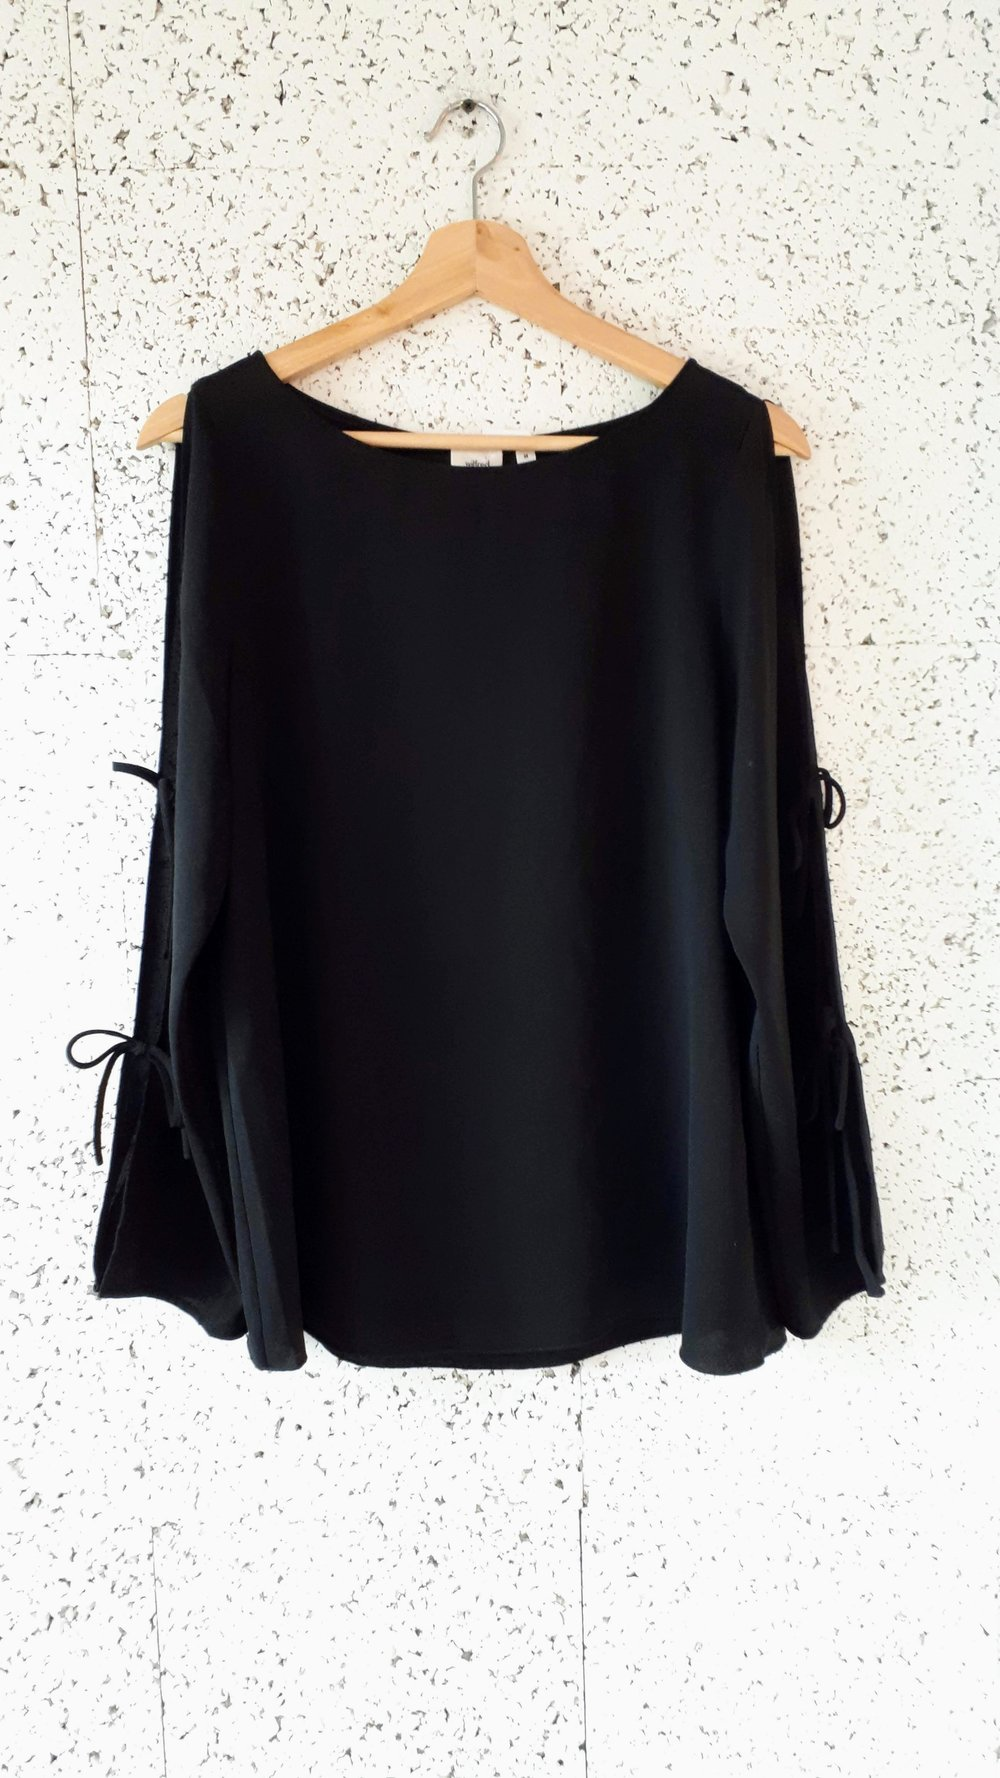 Wilfred top; Size M, $26